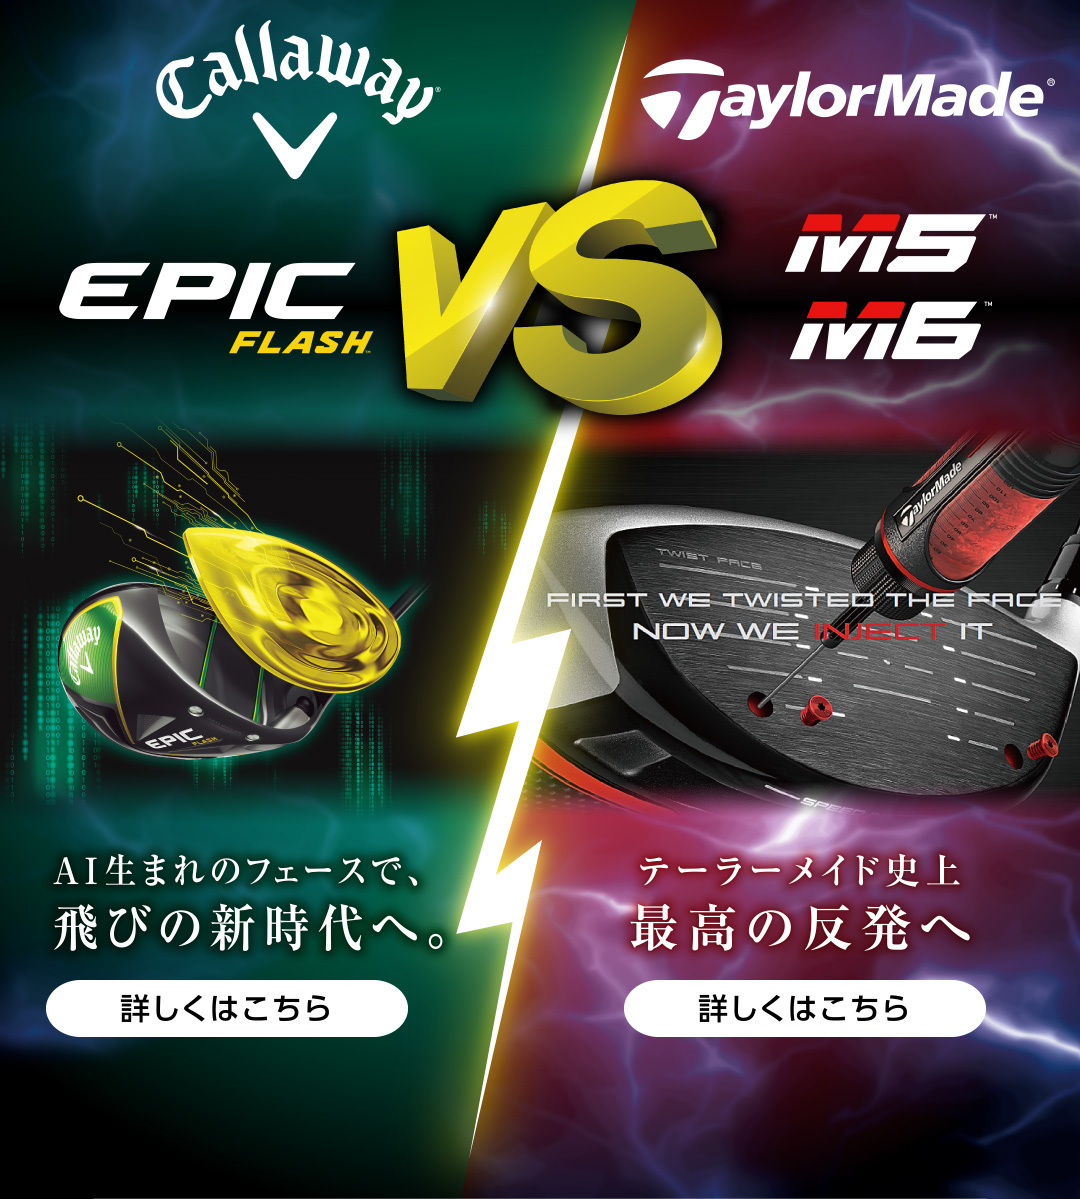 callway EPIC FLASH VS TaylorMade M5 M6